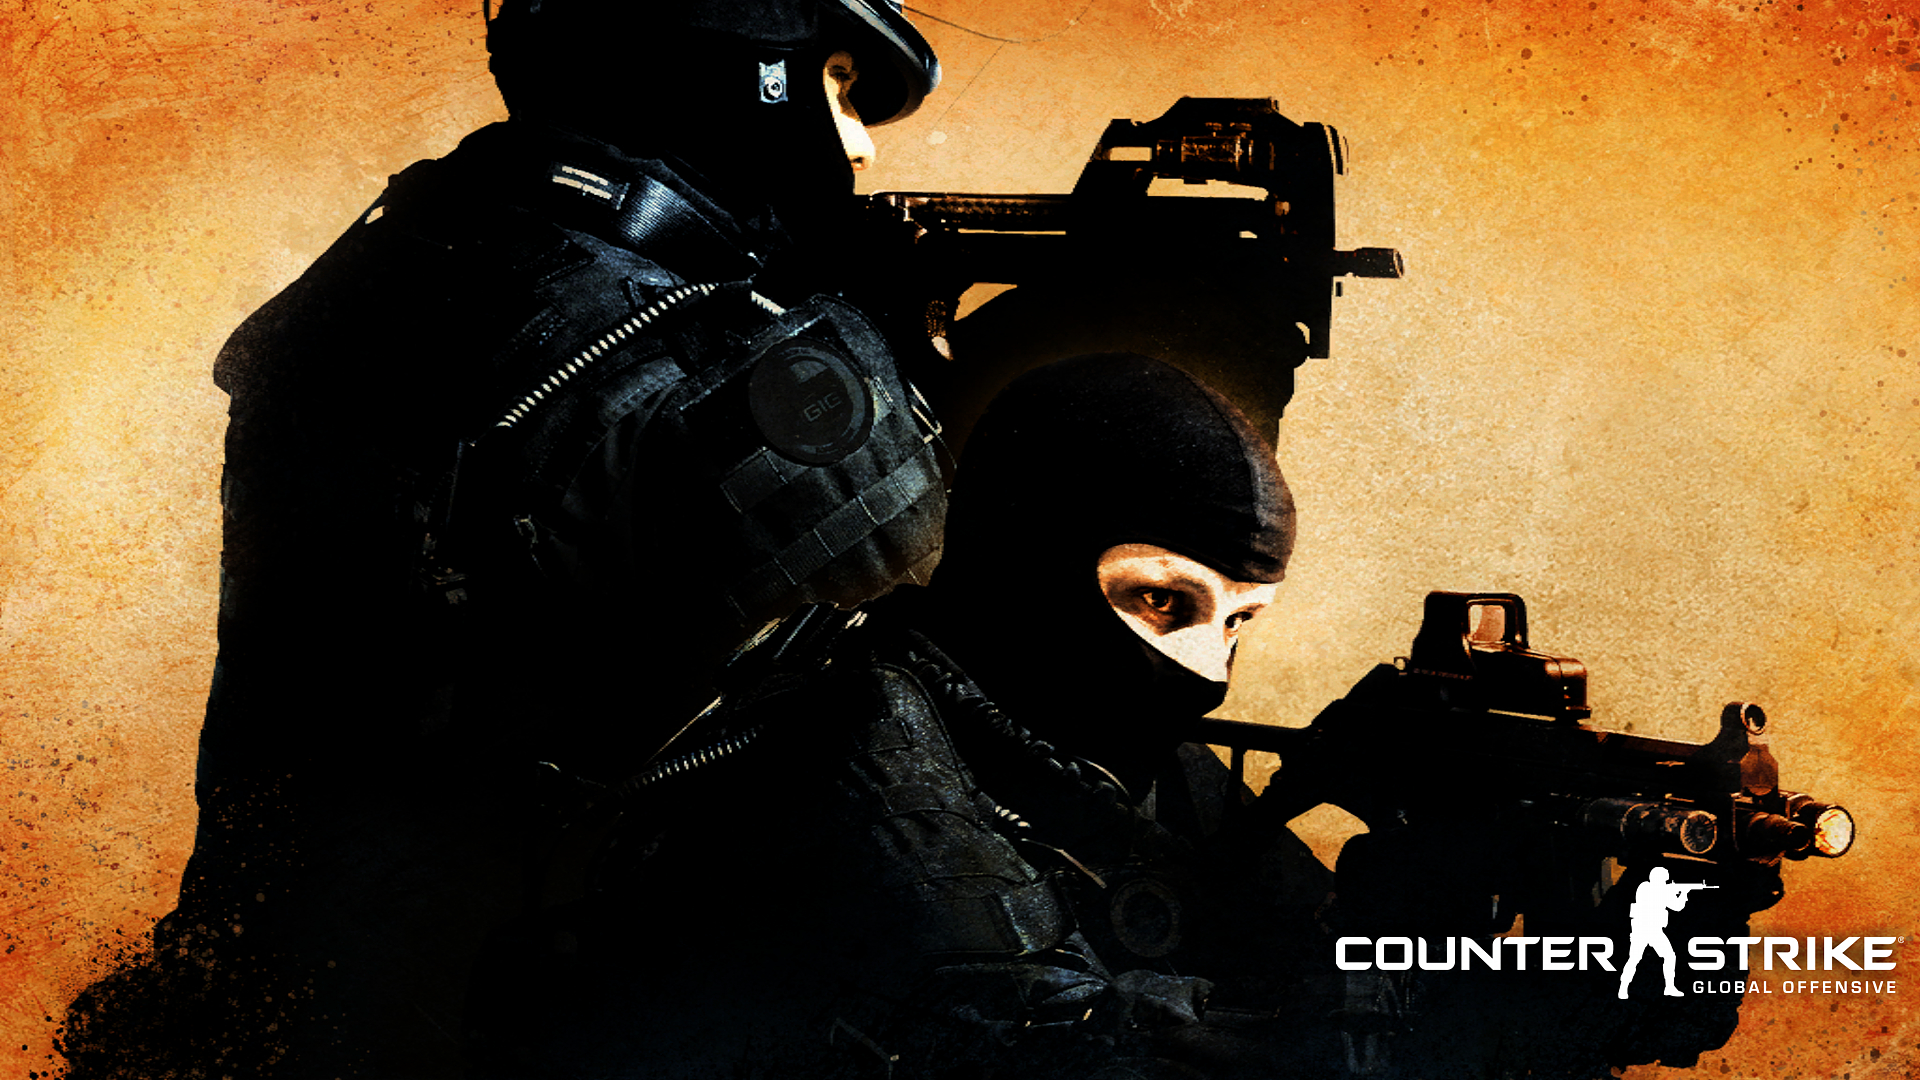 counter-strike-global-offensive-lan-baglantisi-nasil-yapilir-4